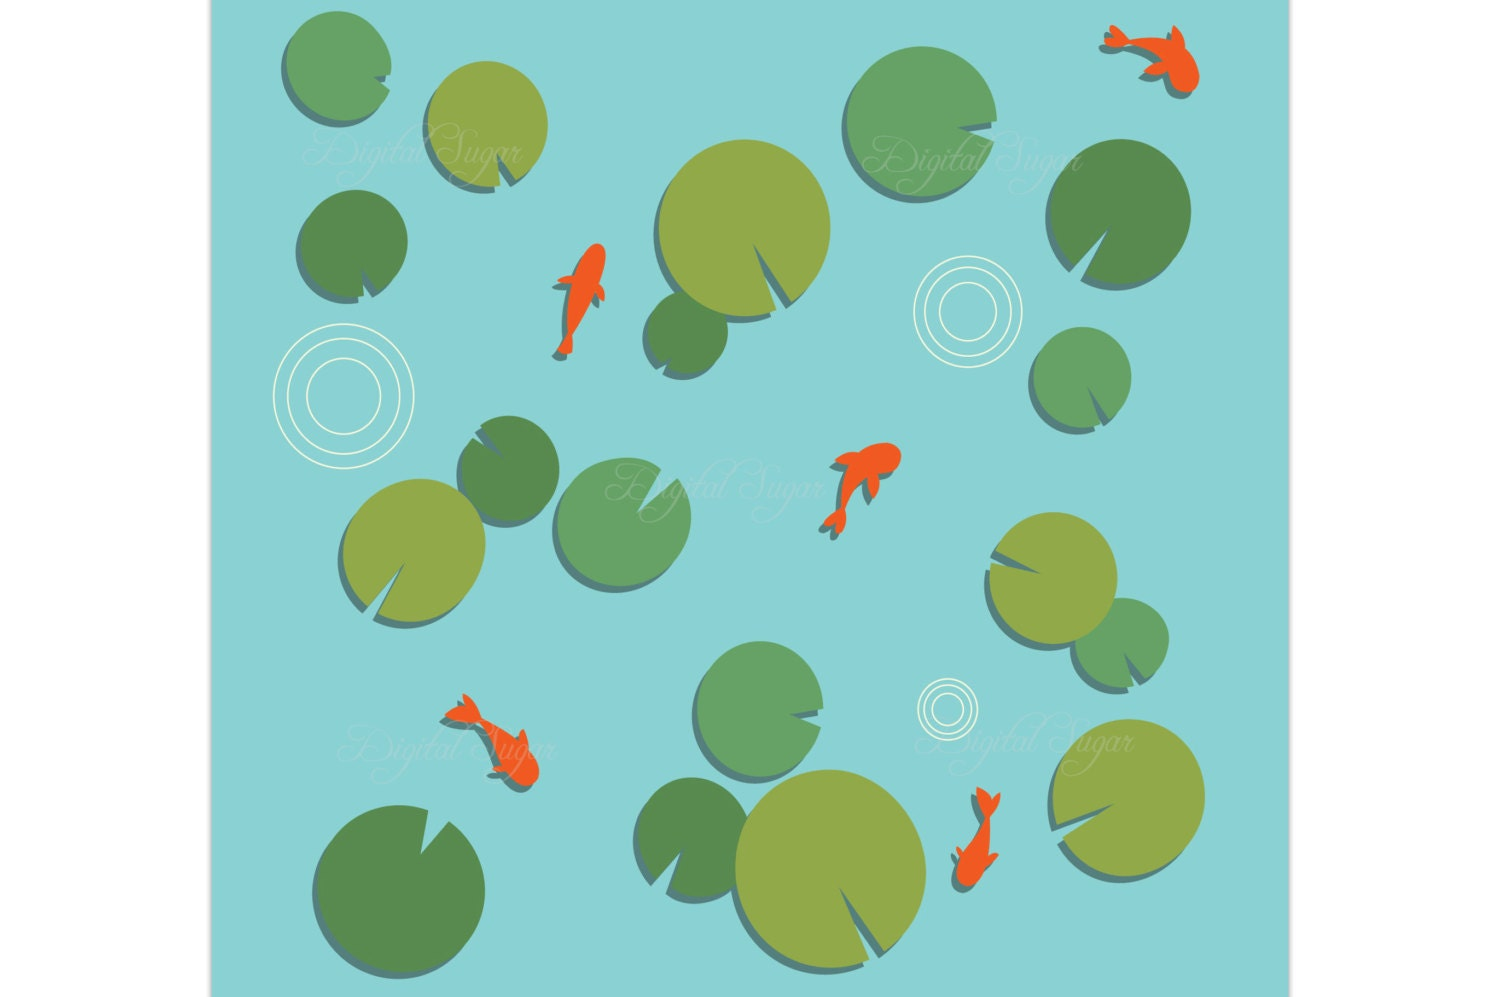 Blue koi fish clipart - photo#22